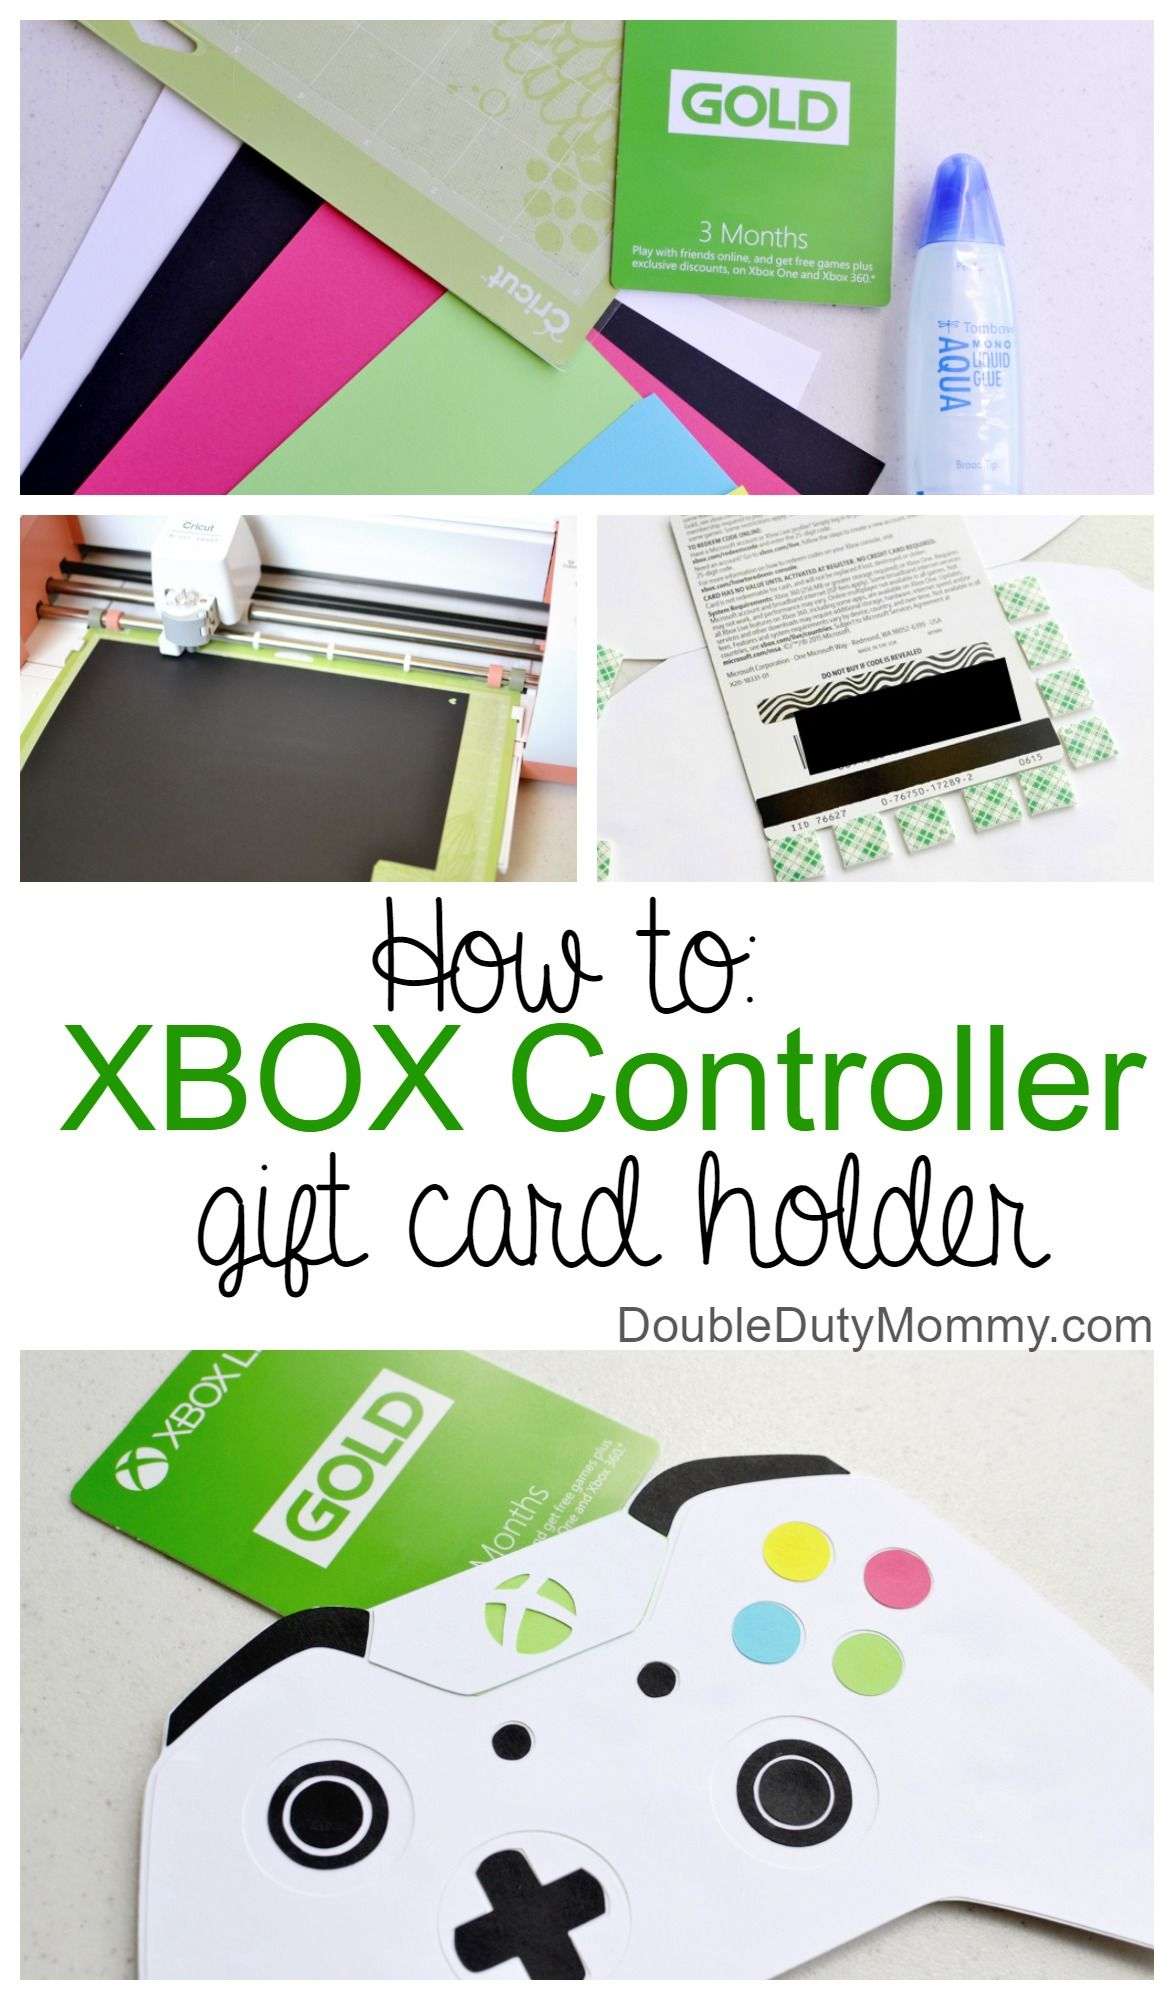 Diy Xbox Controller Gift Card Holder Gift Card Holder Diy Gift Card Holder Card Holder Diy